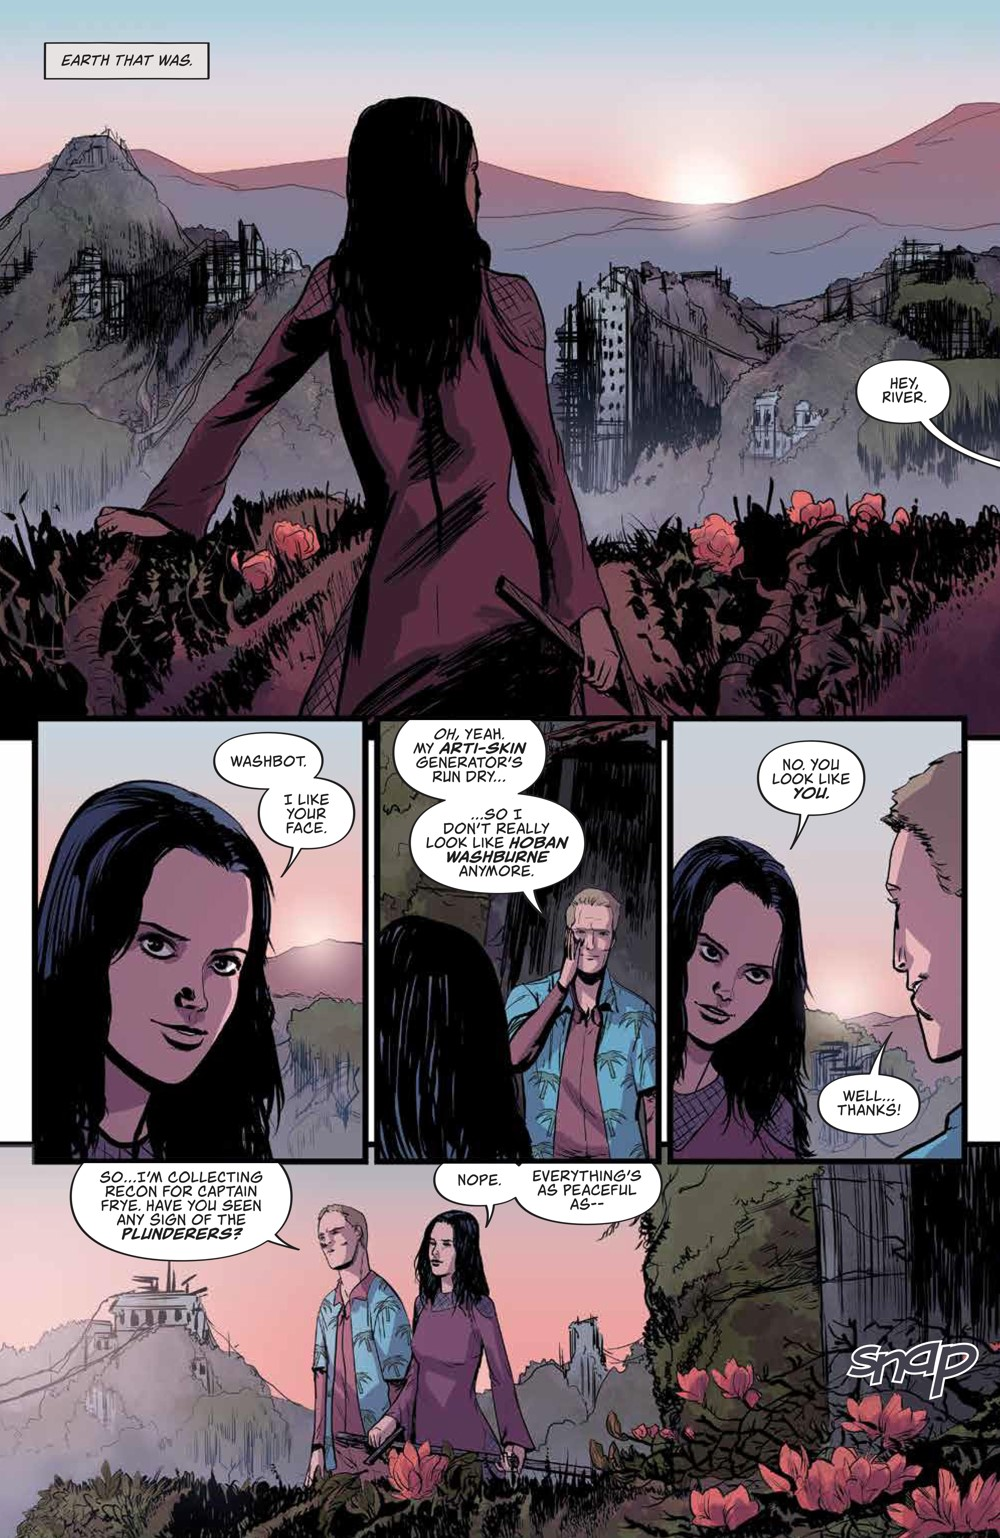 Firefly_031_PRESS_3 ComicList Previews: FIREFLY #31